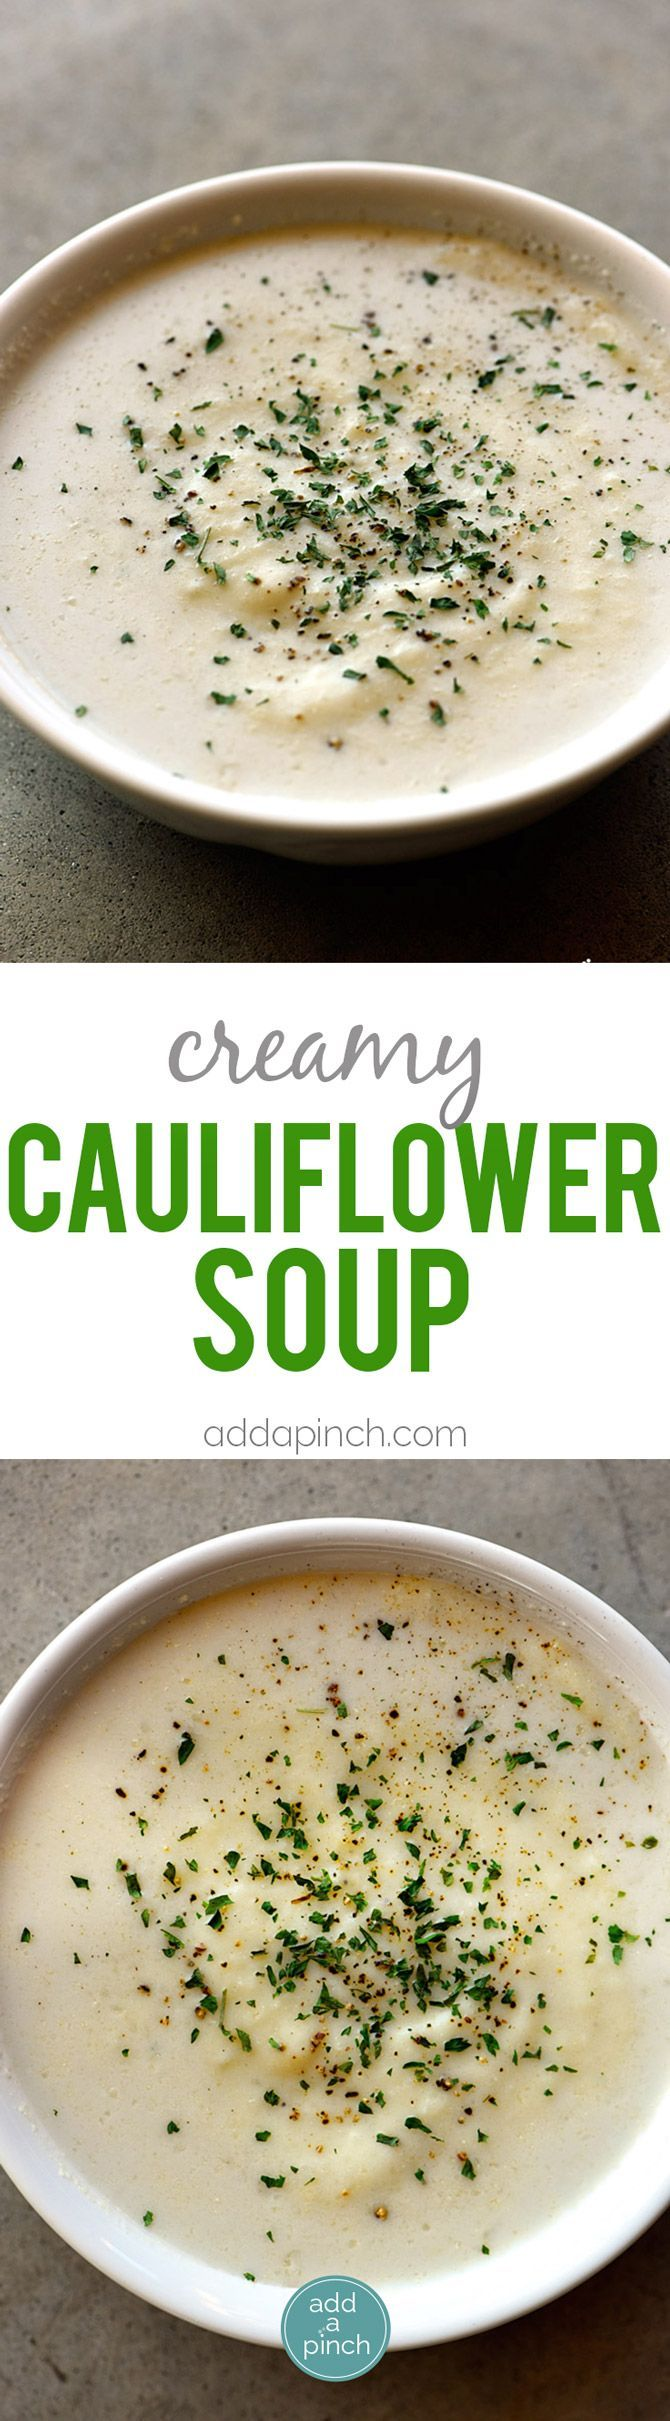 Creamy Cauliflower Soup Recipe - Creamy Cauliflower Soup makes a delicious and comforting soup recipe without a drop of cream! The garlic, onion, and cauliflower are blended together to create a dairy-free, creamy cauliflower soup recipe that everyone loves! // http://addapinch.com